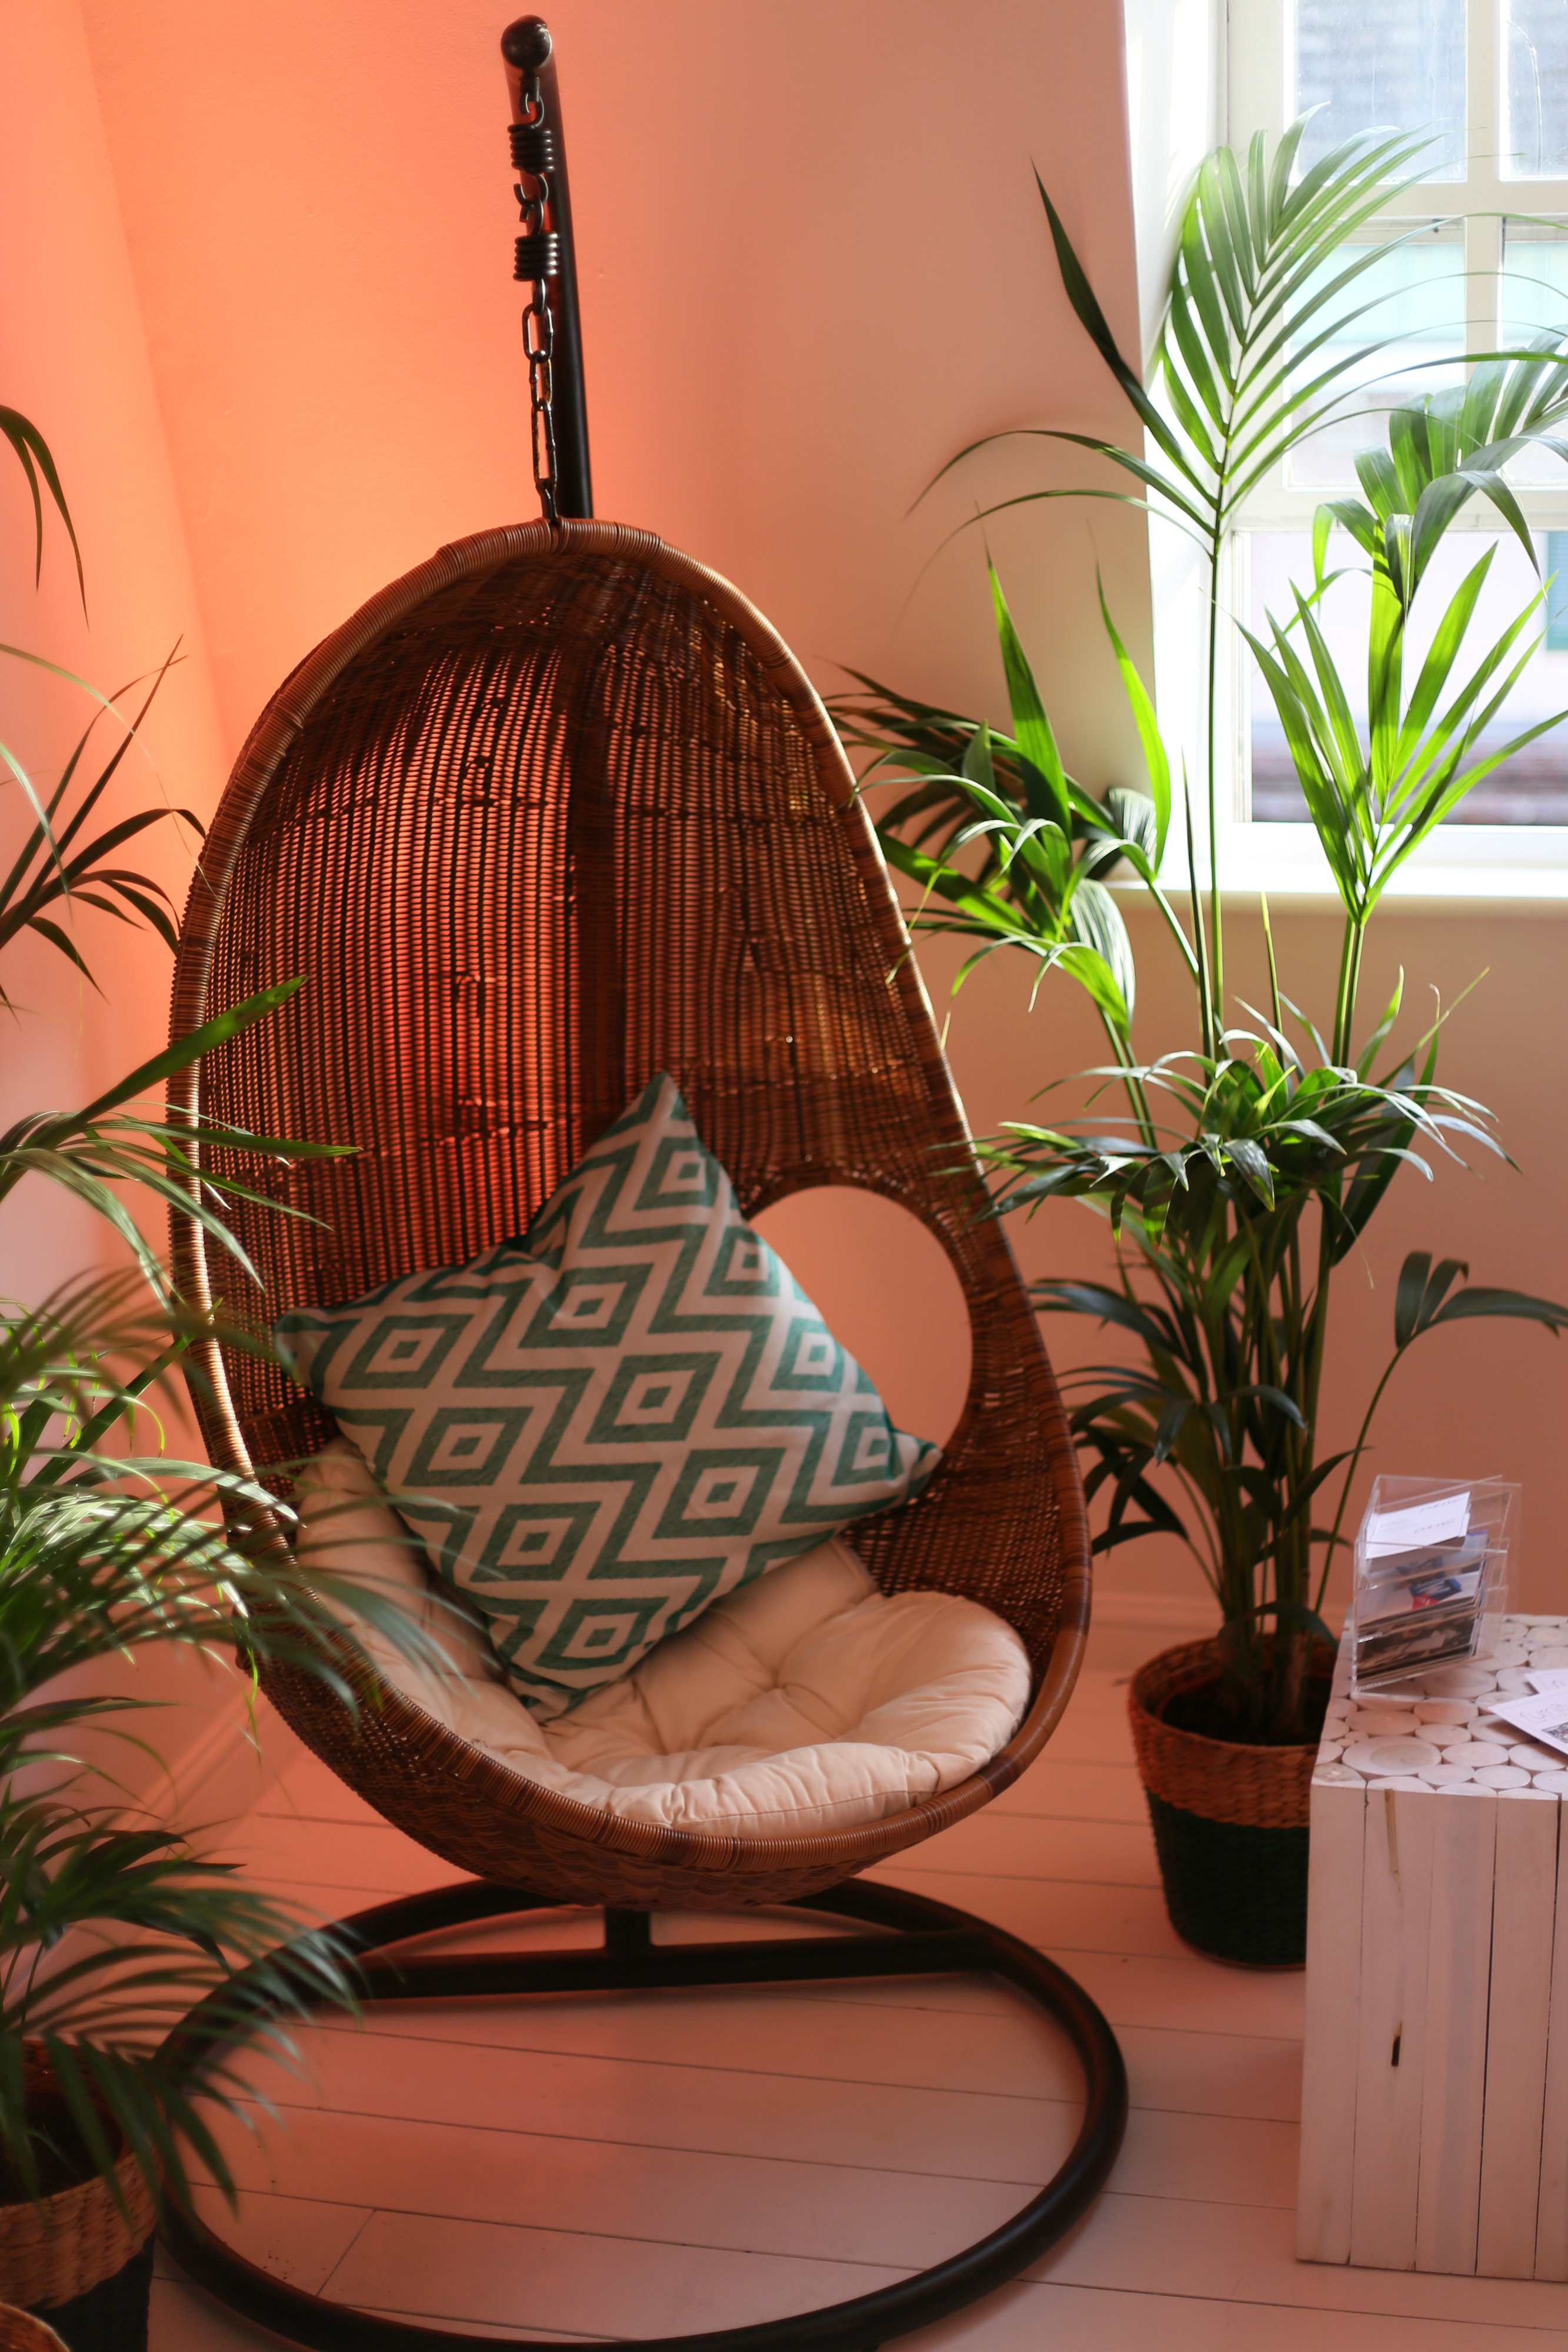 Large Wicker Hanging Chair - Chairs - Furniture on the Move